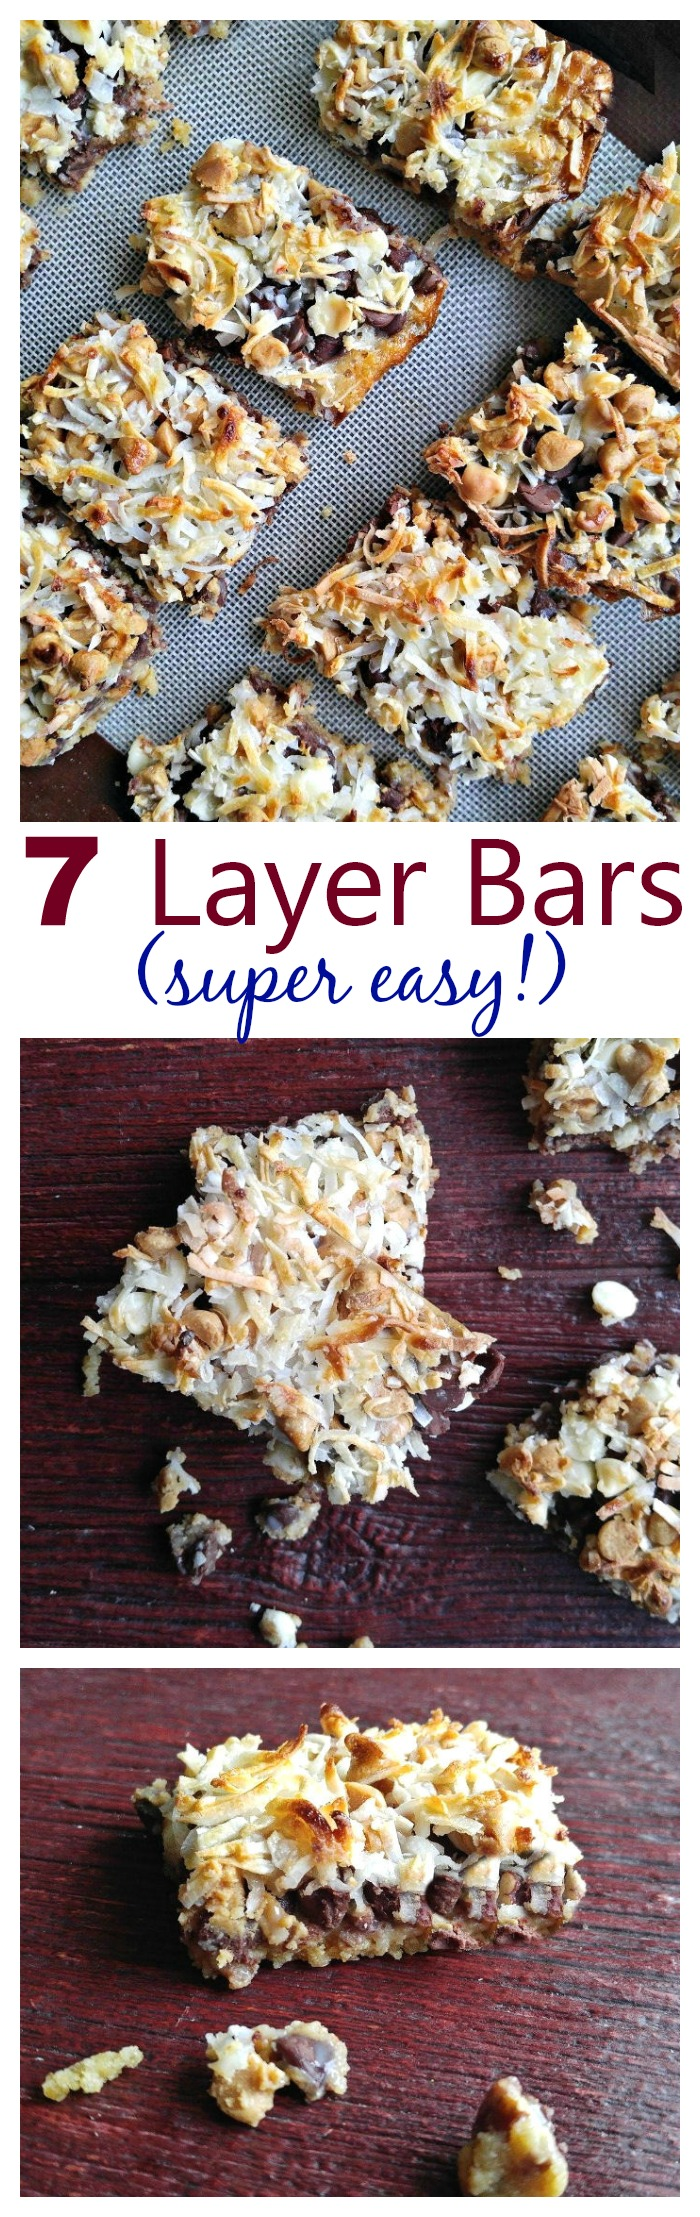 These seven layer bars could not be easier to put together. They are perfect to take to summer parties.